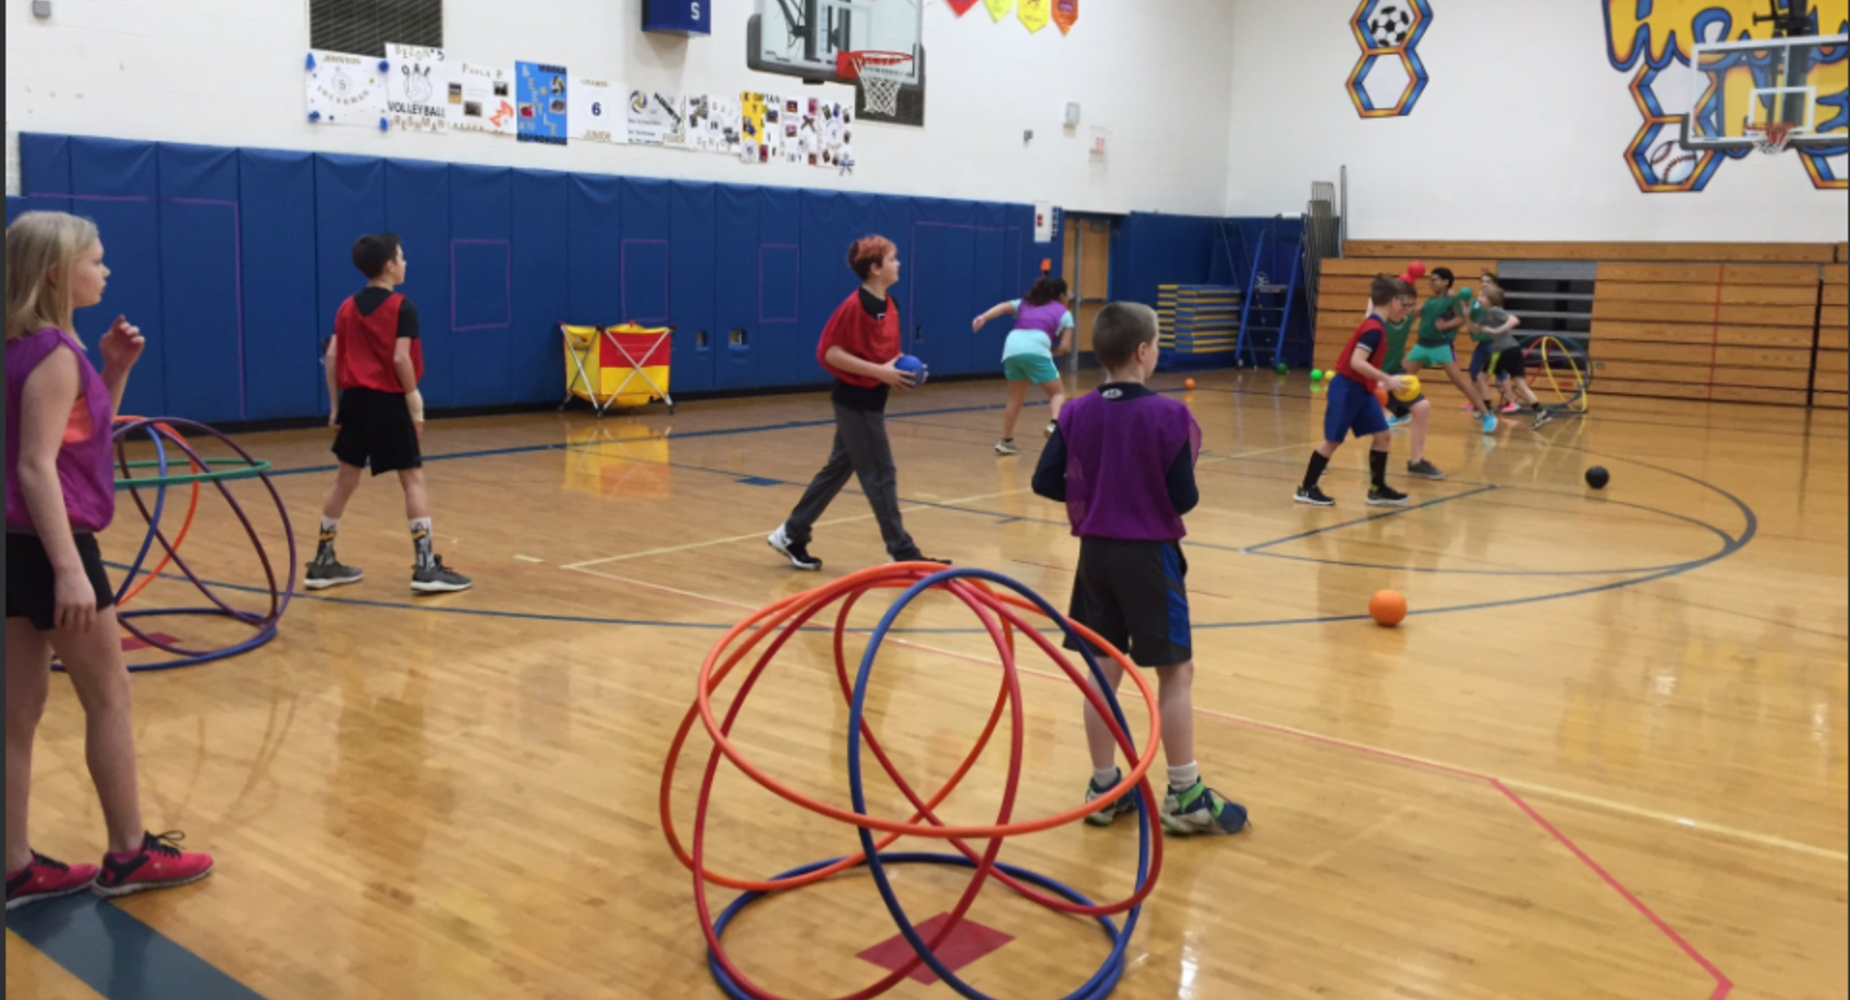 Children playing with hoops in gym